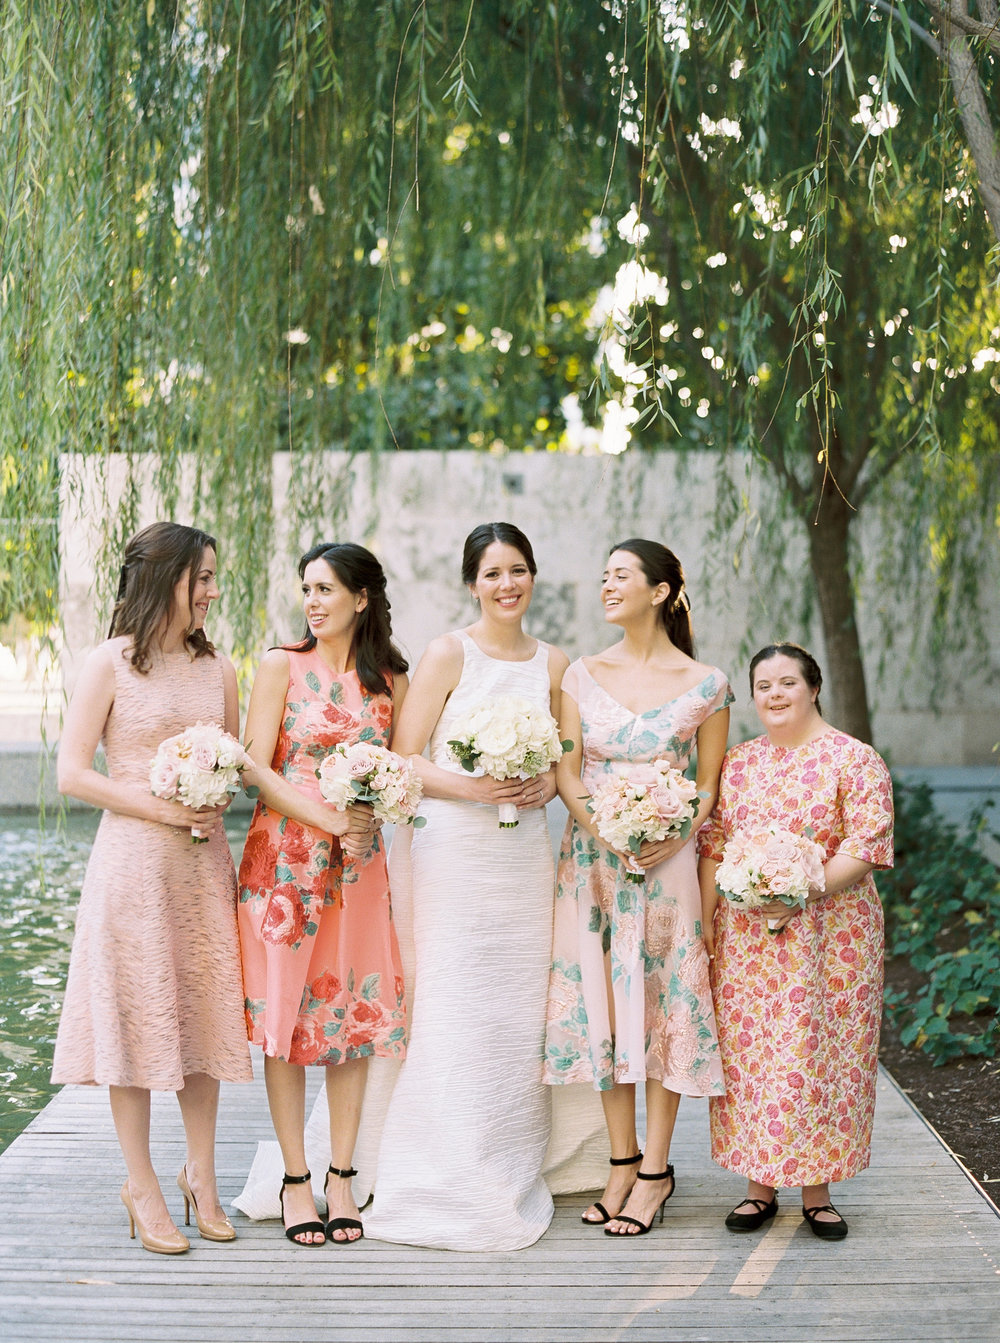 Bridesmaids Details - Dallas, TX - Fall Wedding - Julian Leaver Events